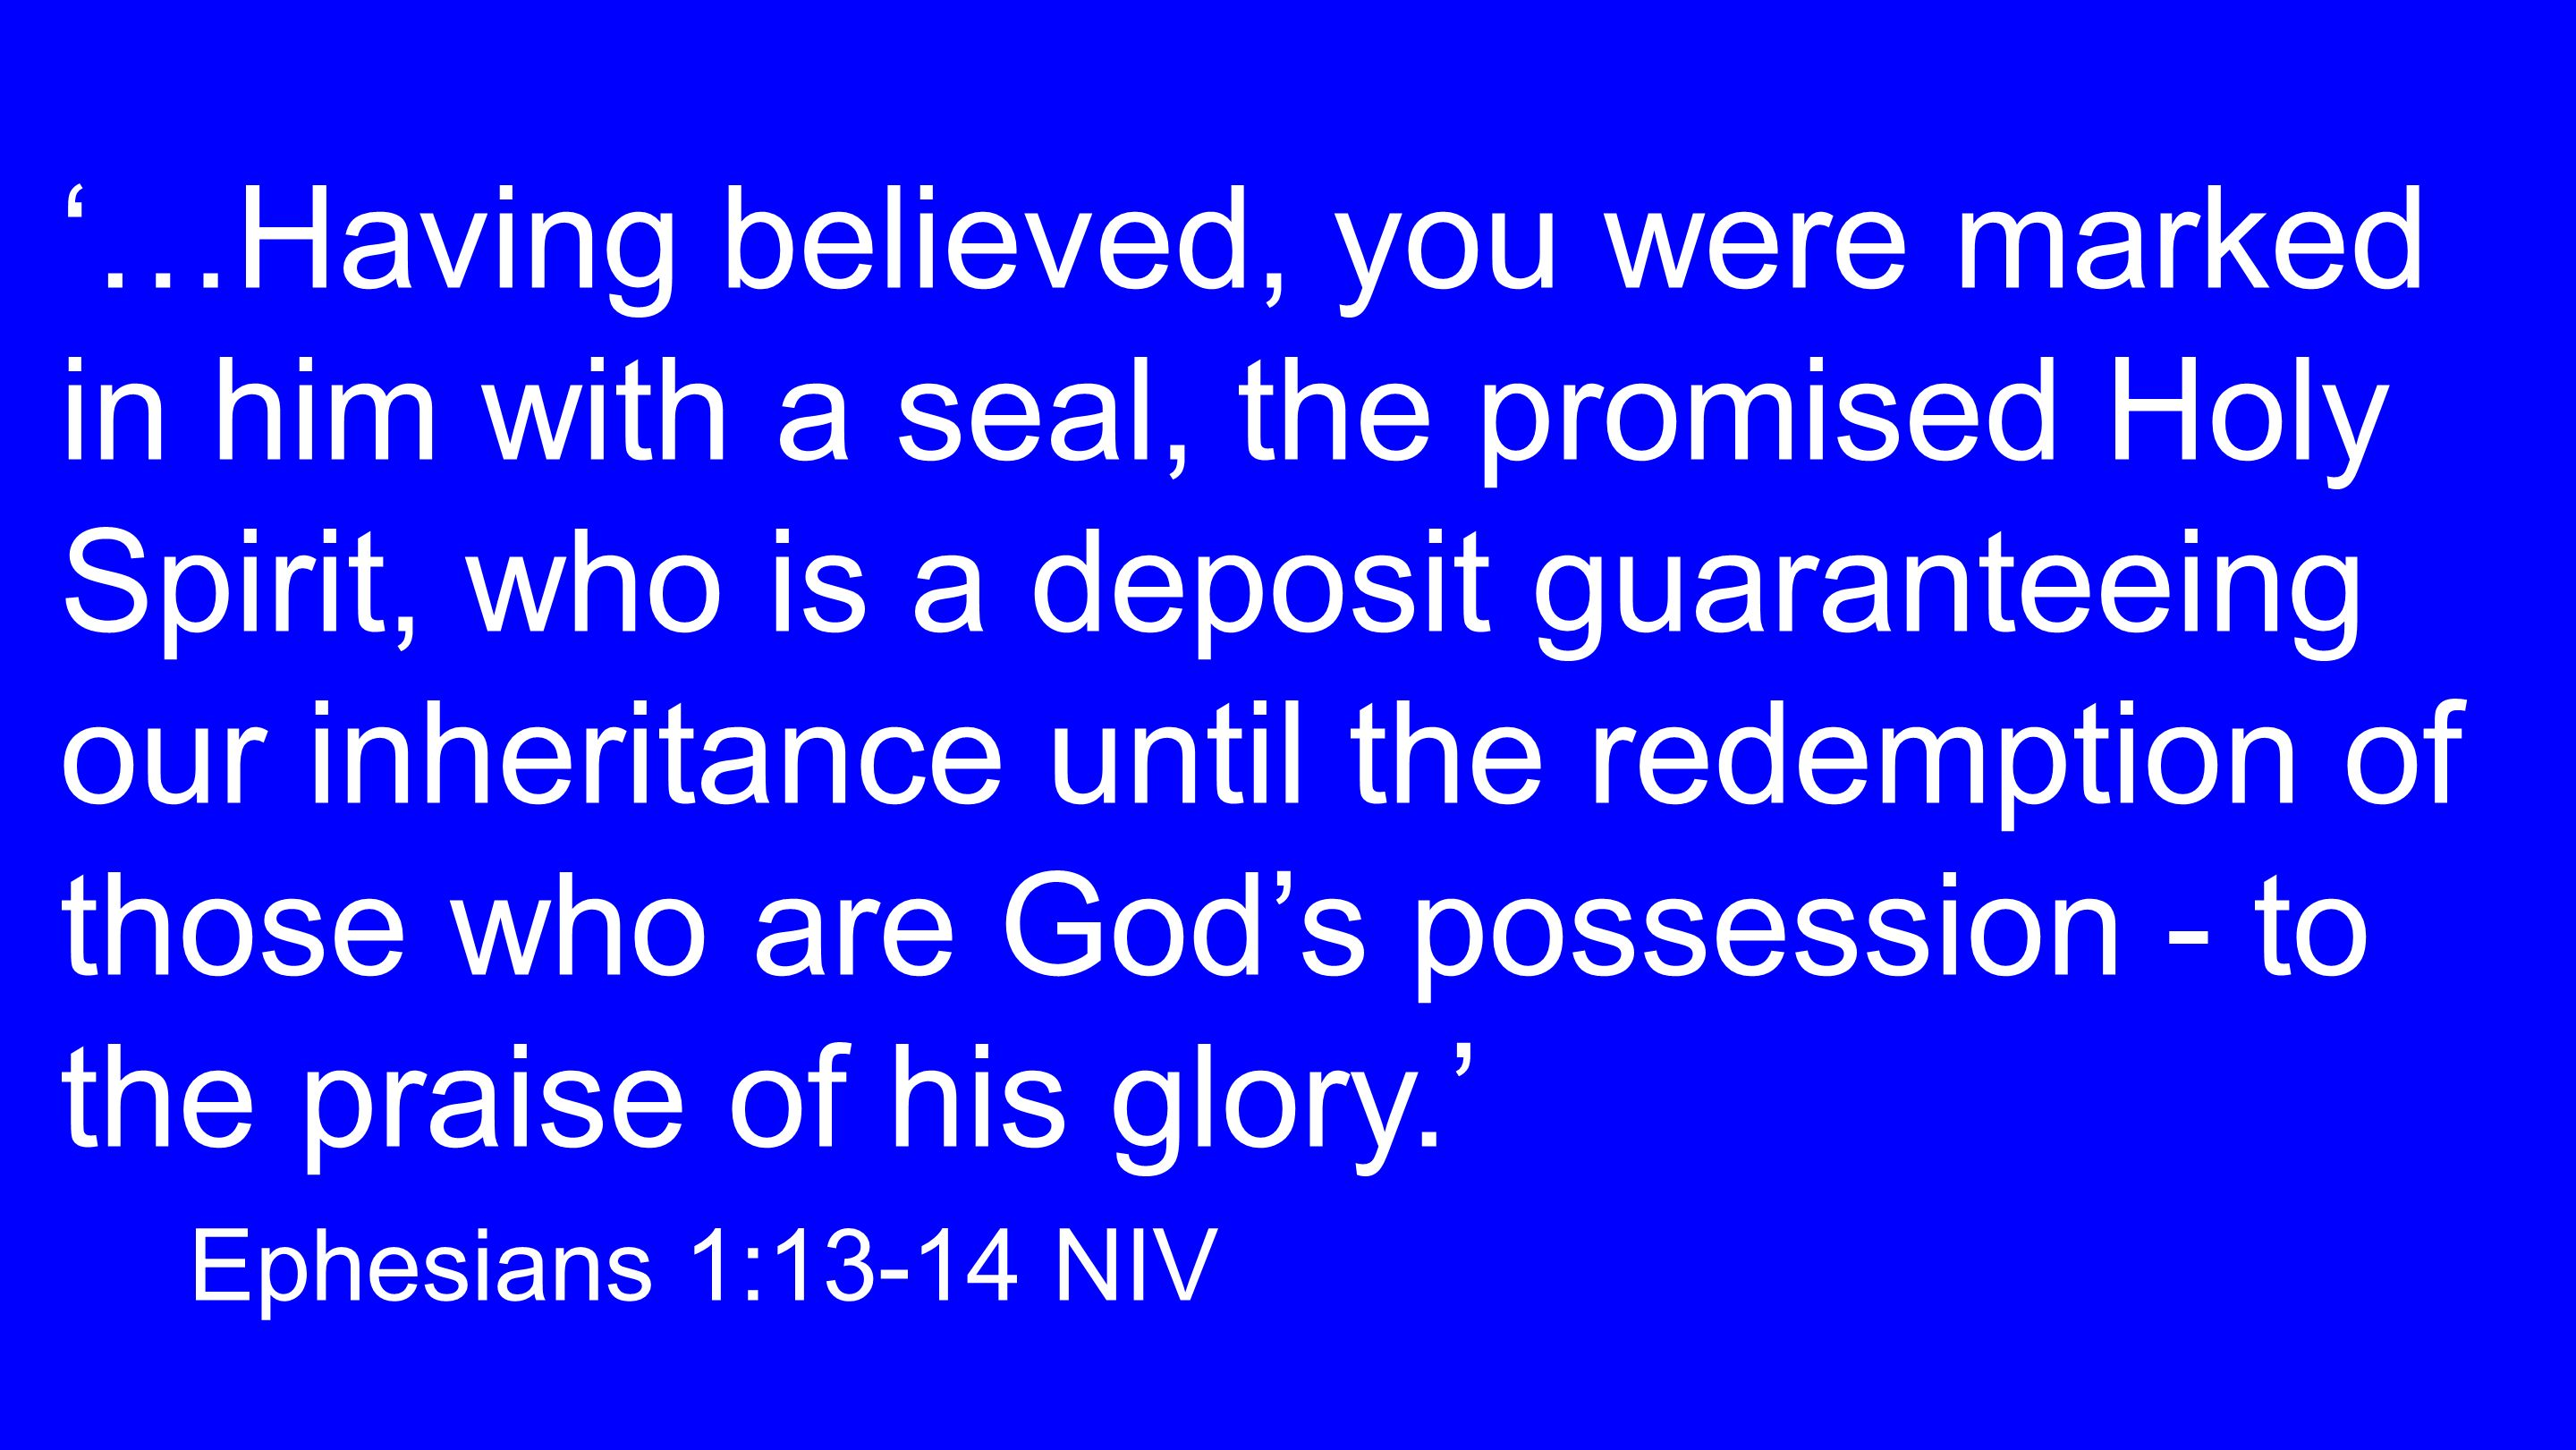 '…Having believed, you were marked in him with a seal, the promised Holy Spirit, who is a deposit guaranteeing our inheritance until the redemption of those who are God's possession - to the praise of his glory.' Ephesians 1:13-14 NIV